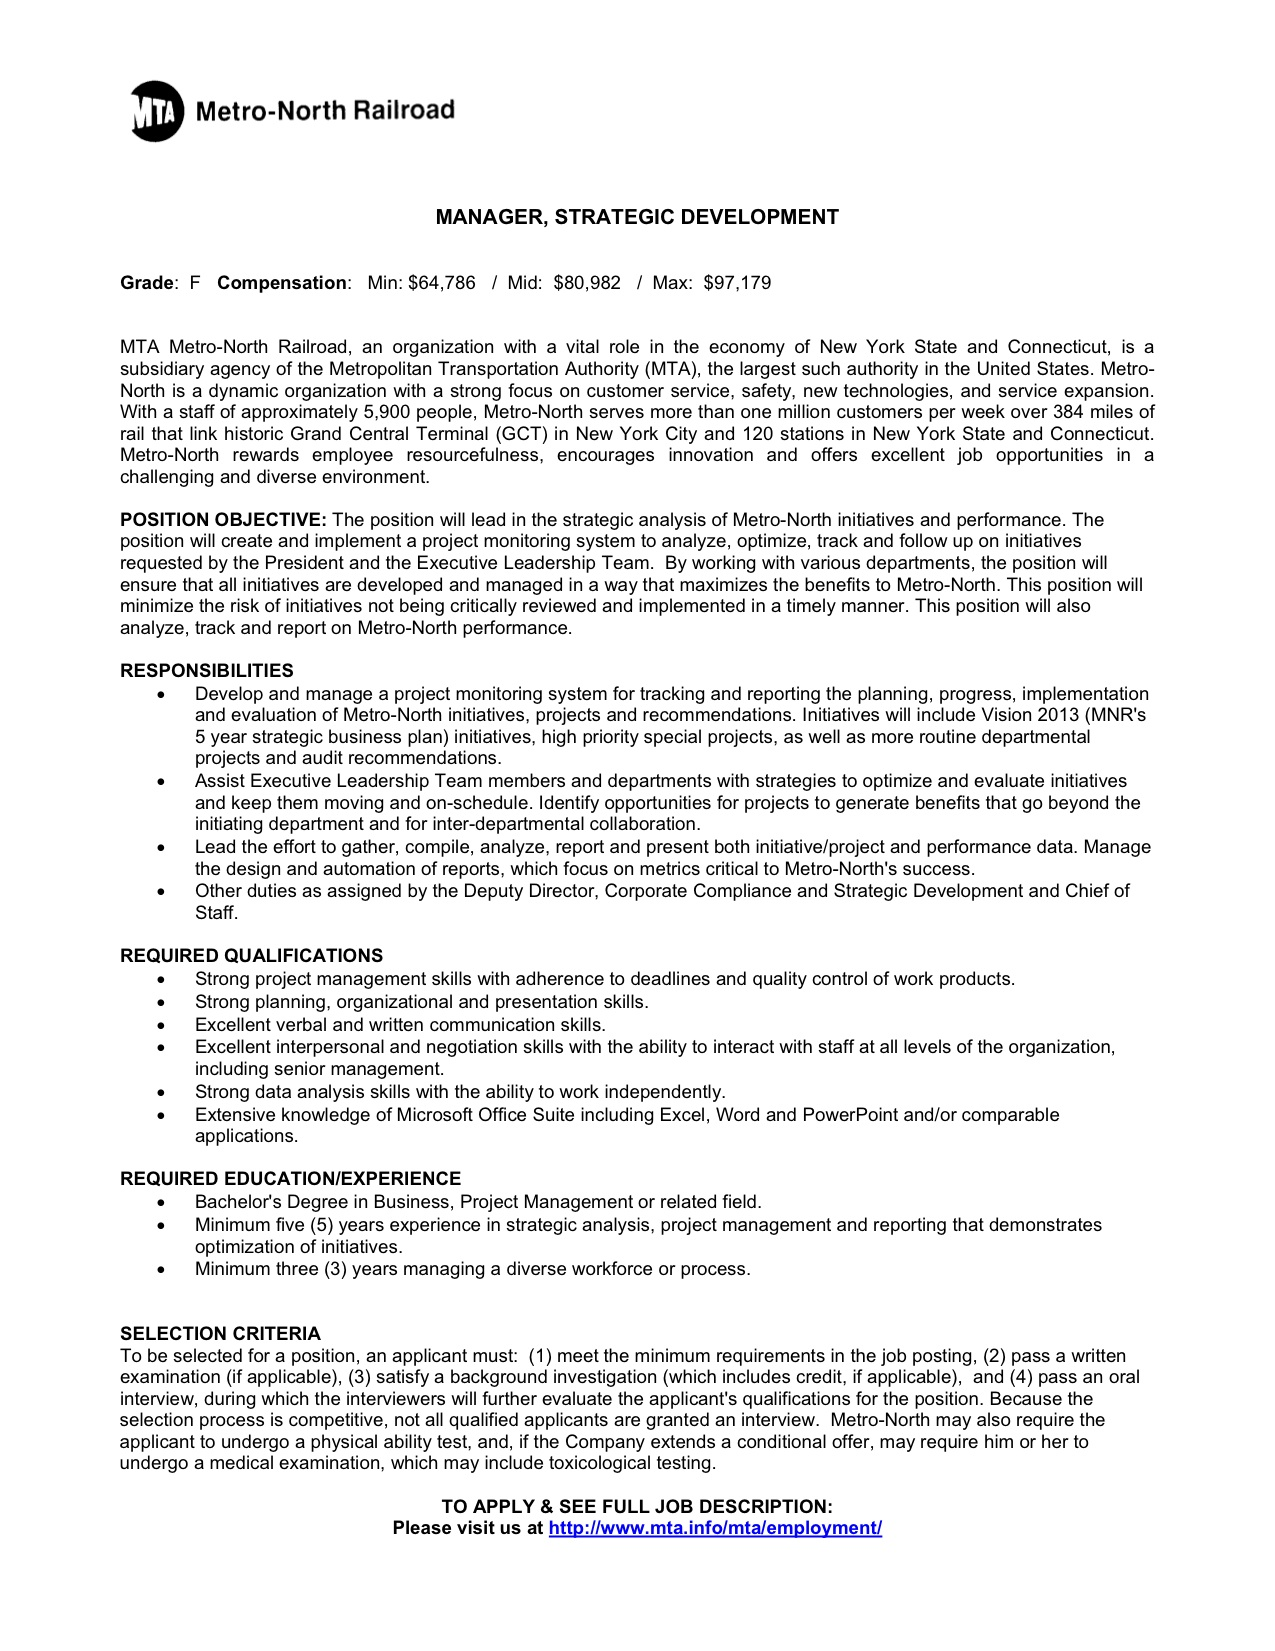 Supervisor Resume Examples 2012 Metro North Railroad Manager Strategicdevelopment Ypt